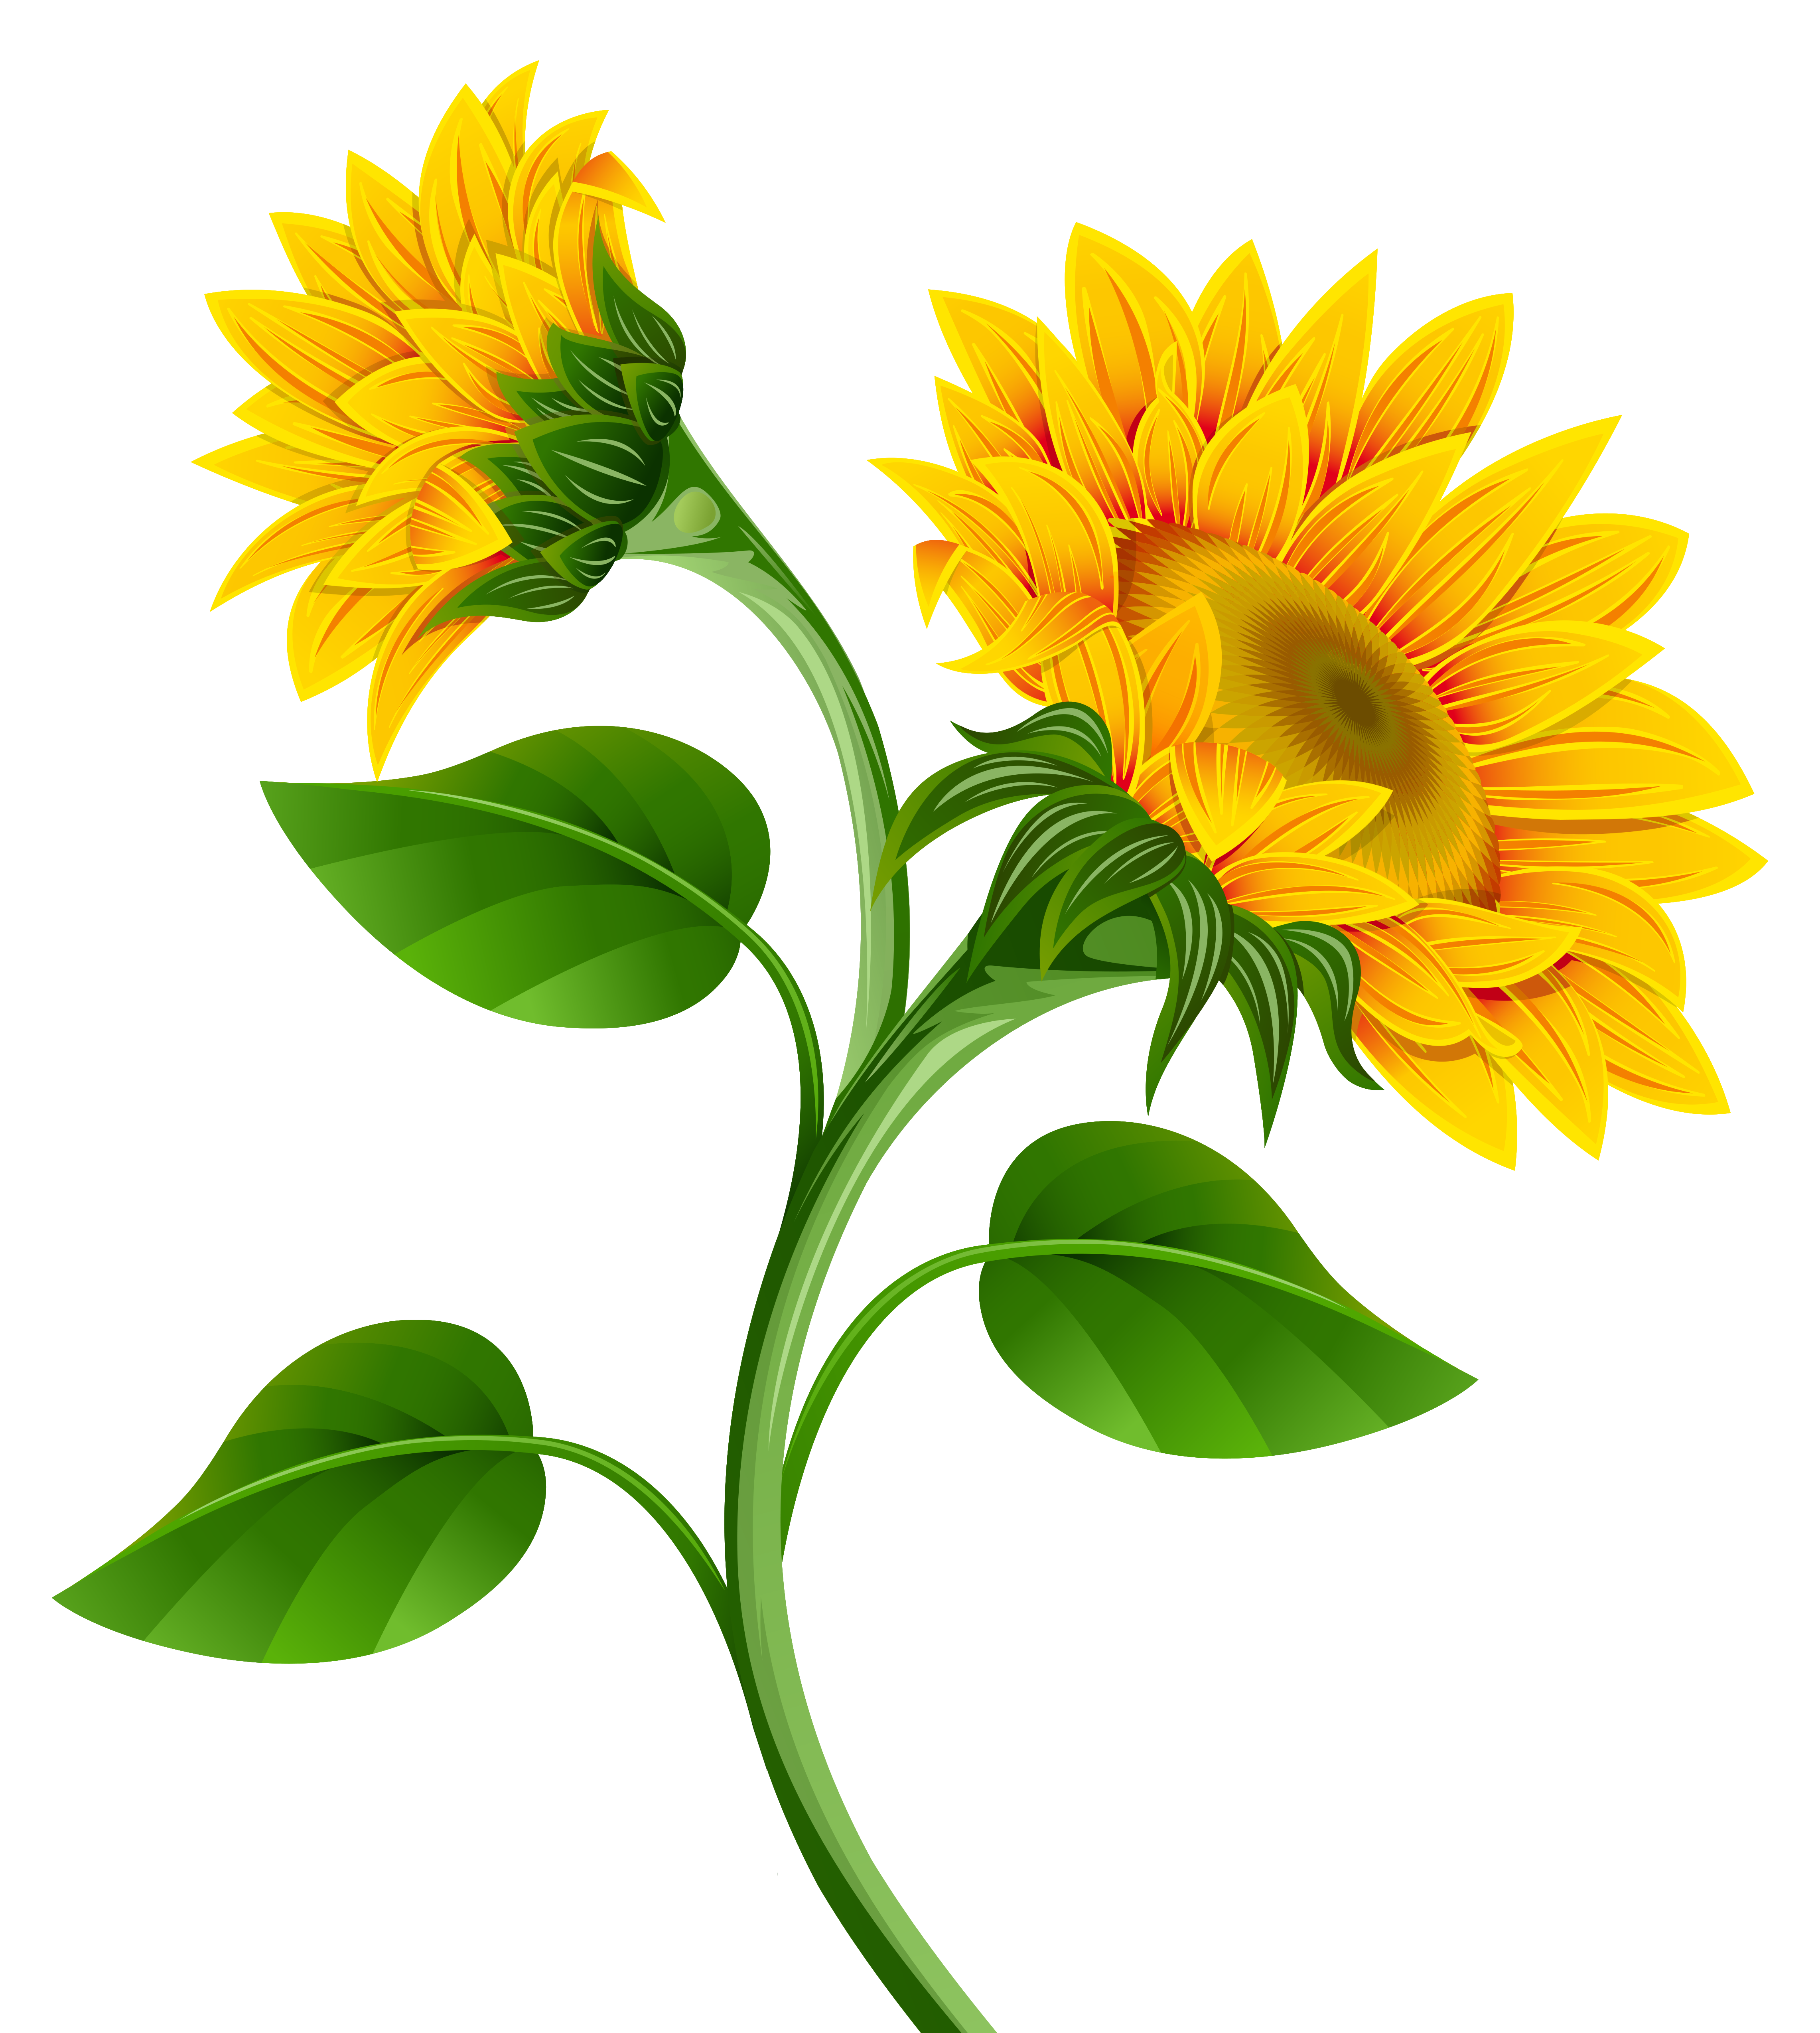 picture download Sunflowers clipart. Png image gallery yopriceville